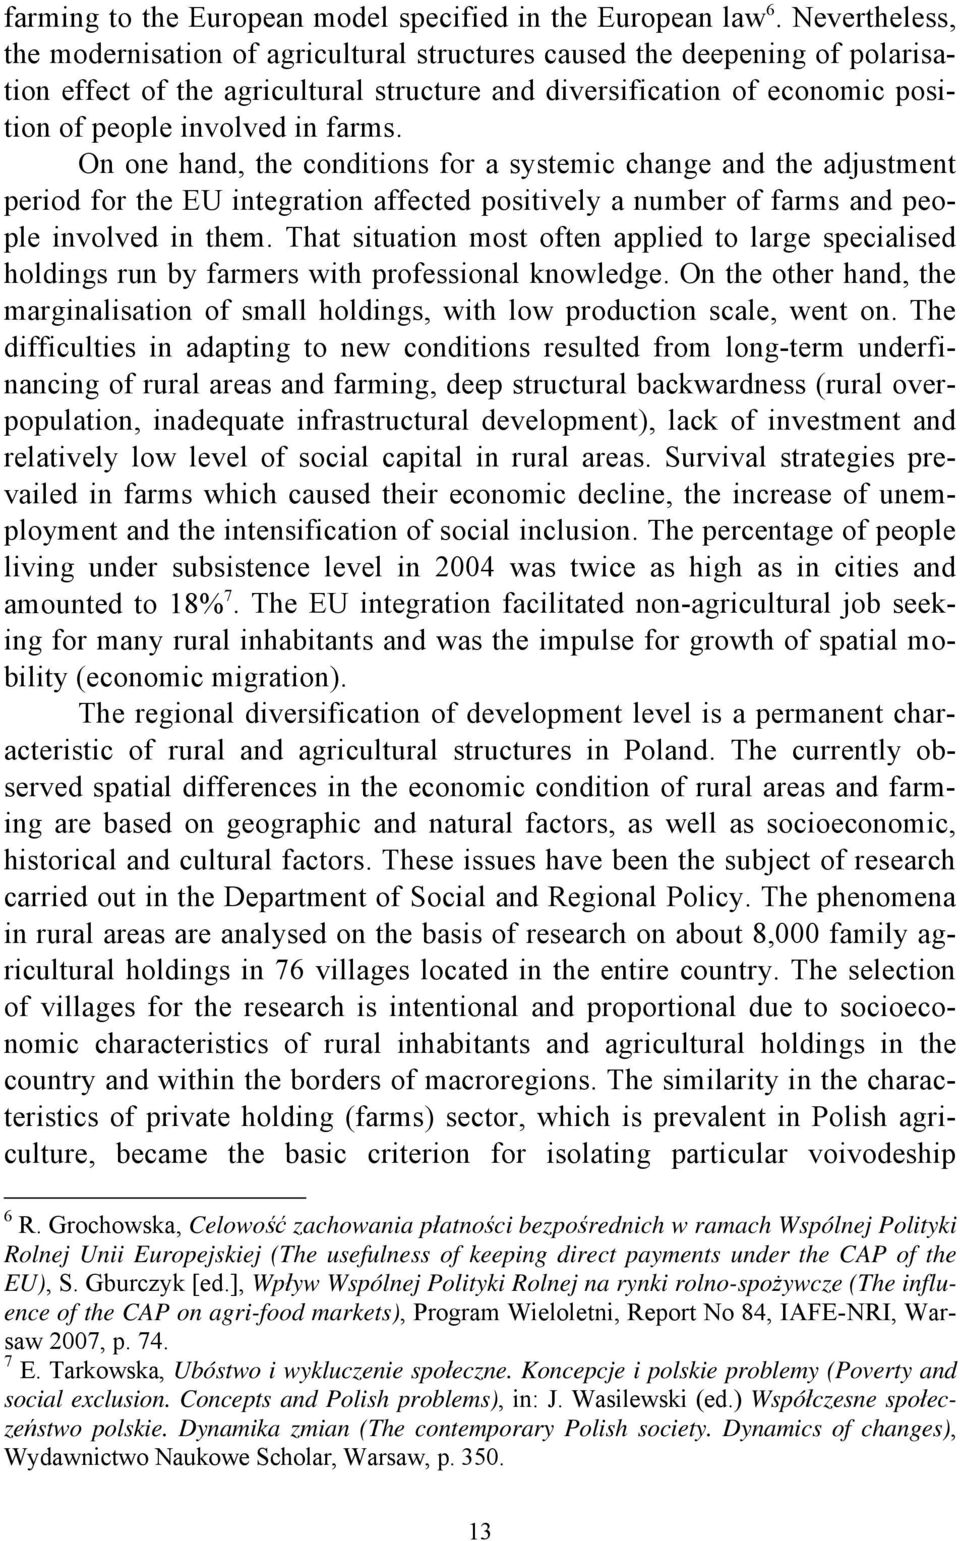 farms. On one hand, the conditions for a systemic change and the adjustment period for the EU integration affected positively a number of farms and people involved in them.